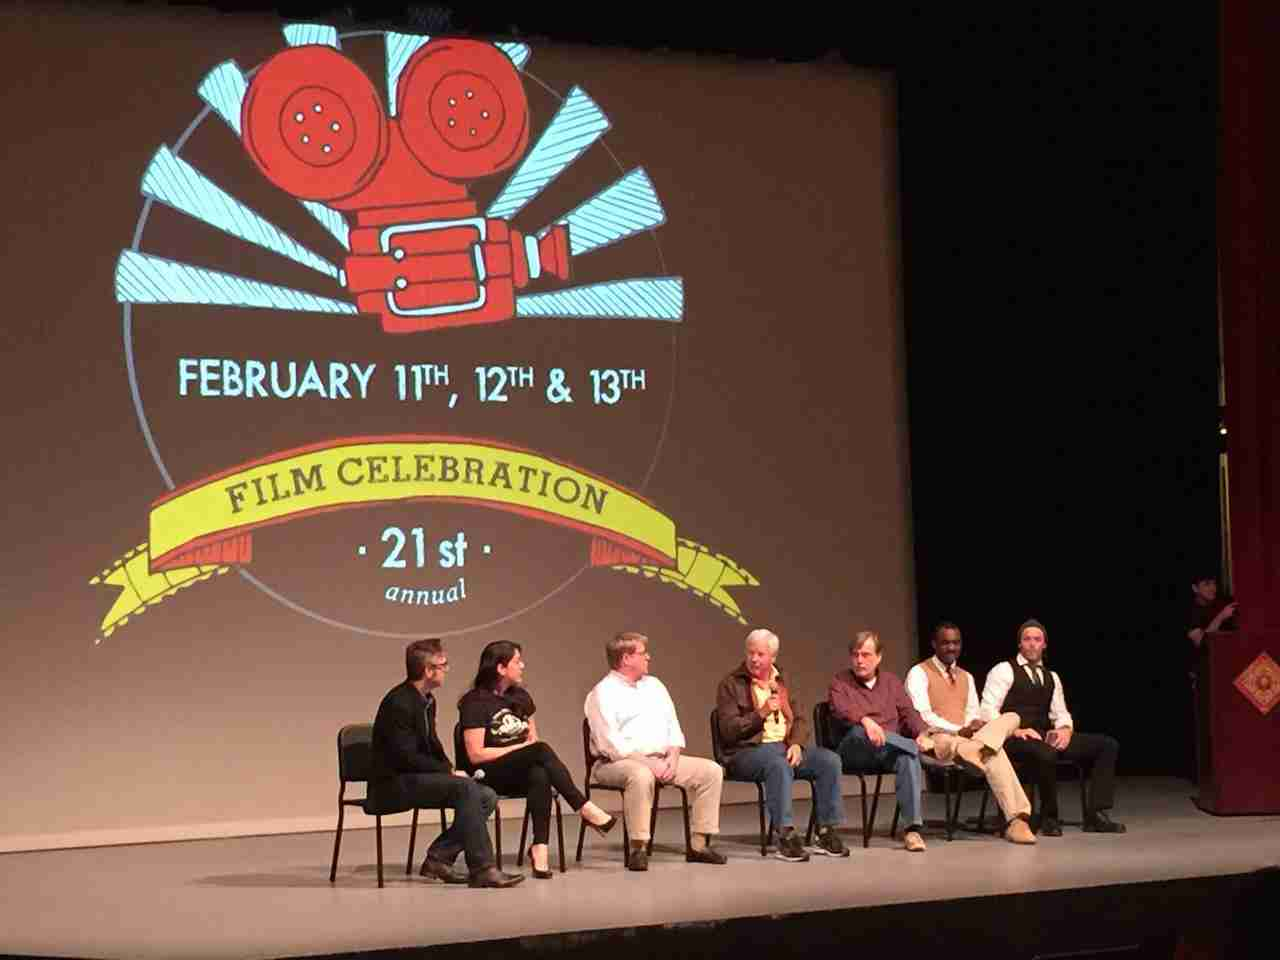 This was the first annual Film Celebration without Clemente, the founder and former chair of the school's film program.